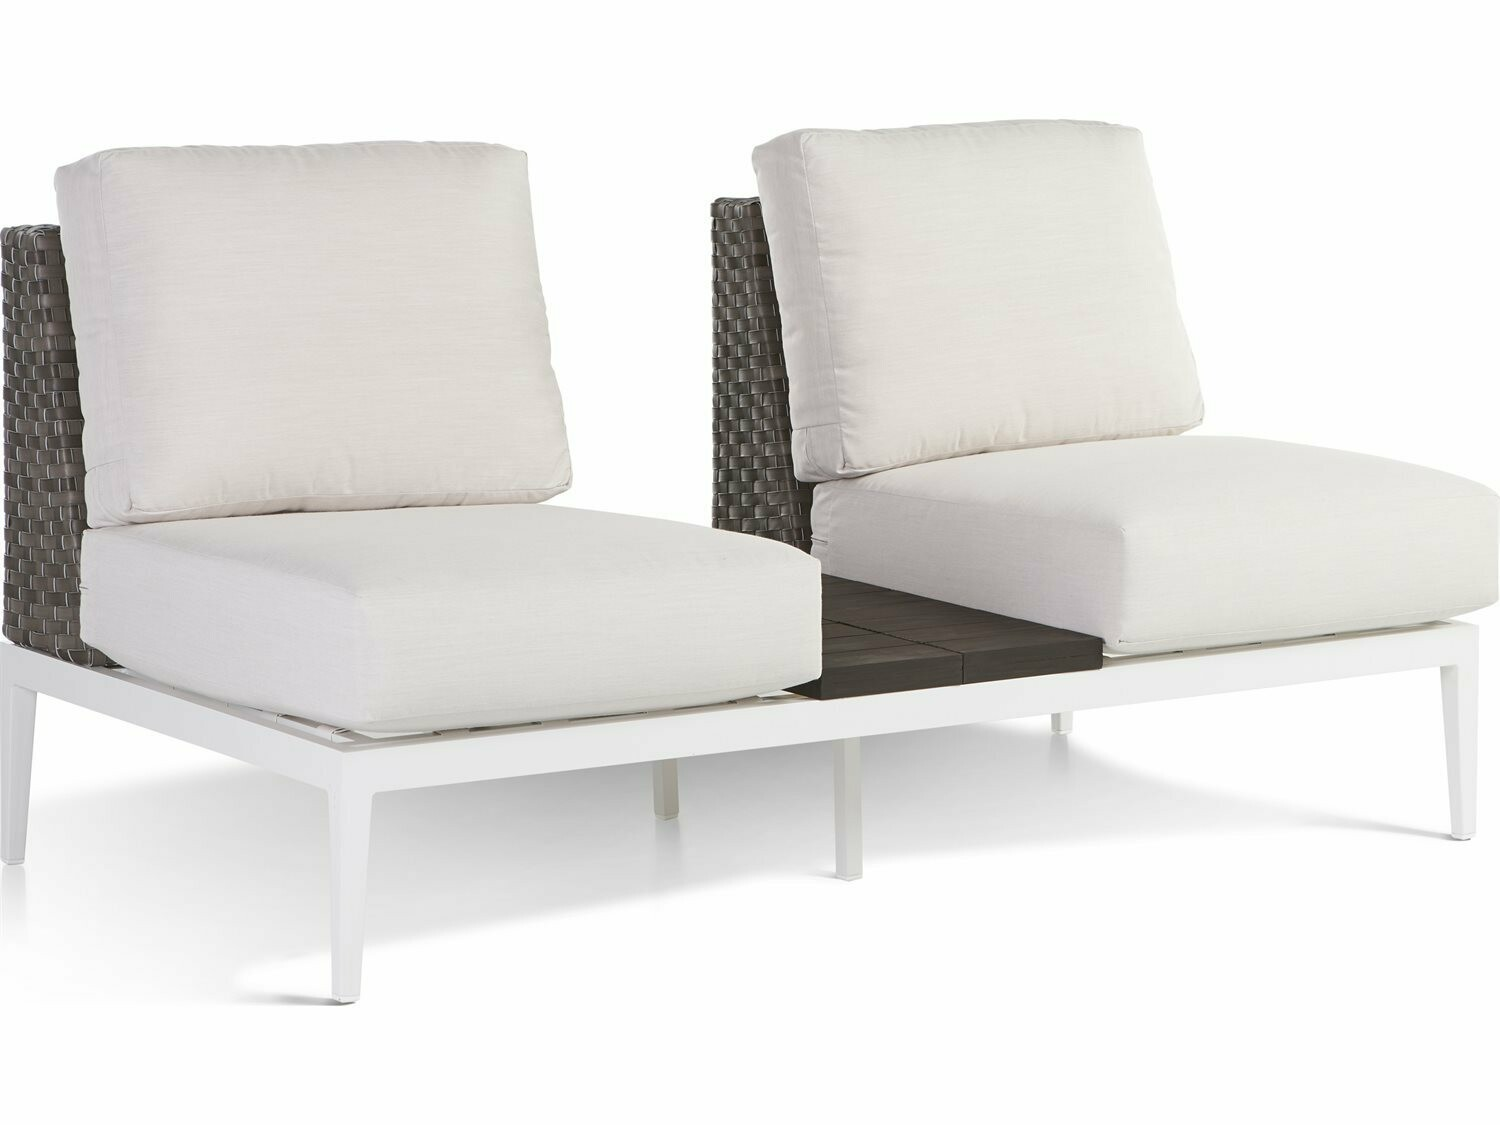 South Sea Rattan Stevie Wicker Loveseat with in Between Table